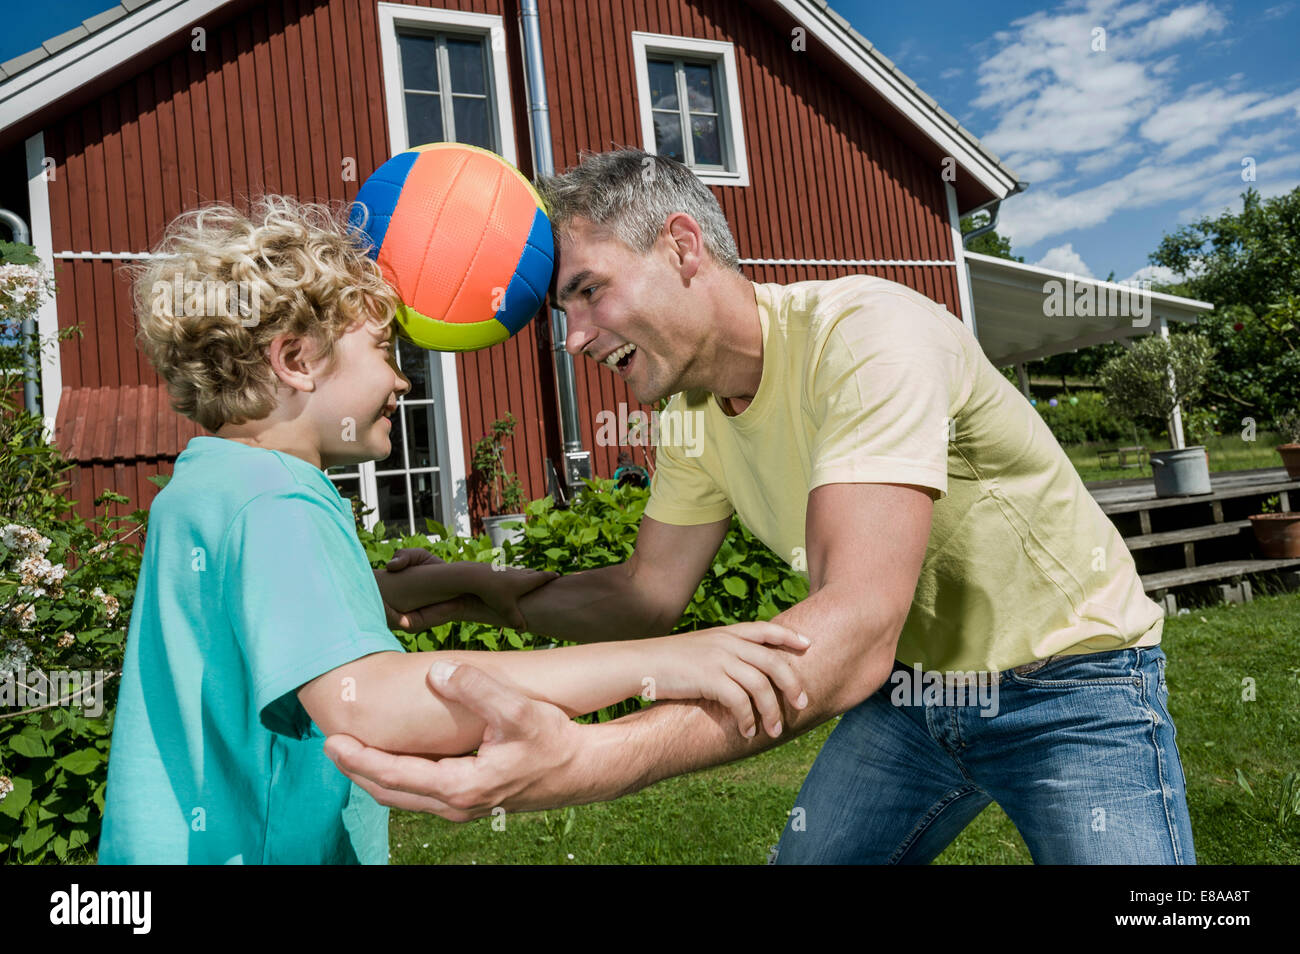 Father son balancing football playing fun garden Stock Photo